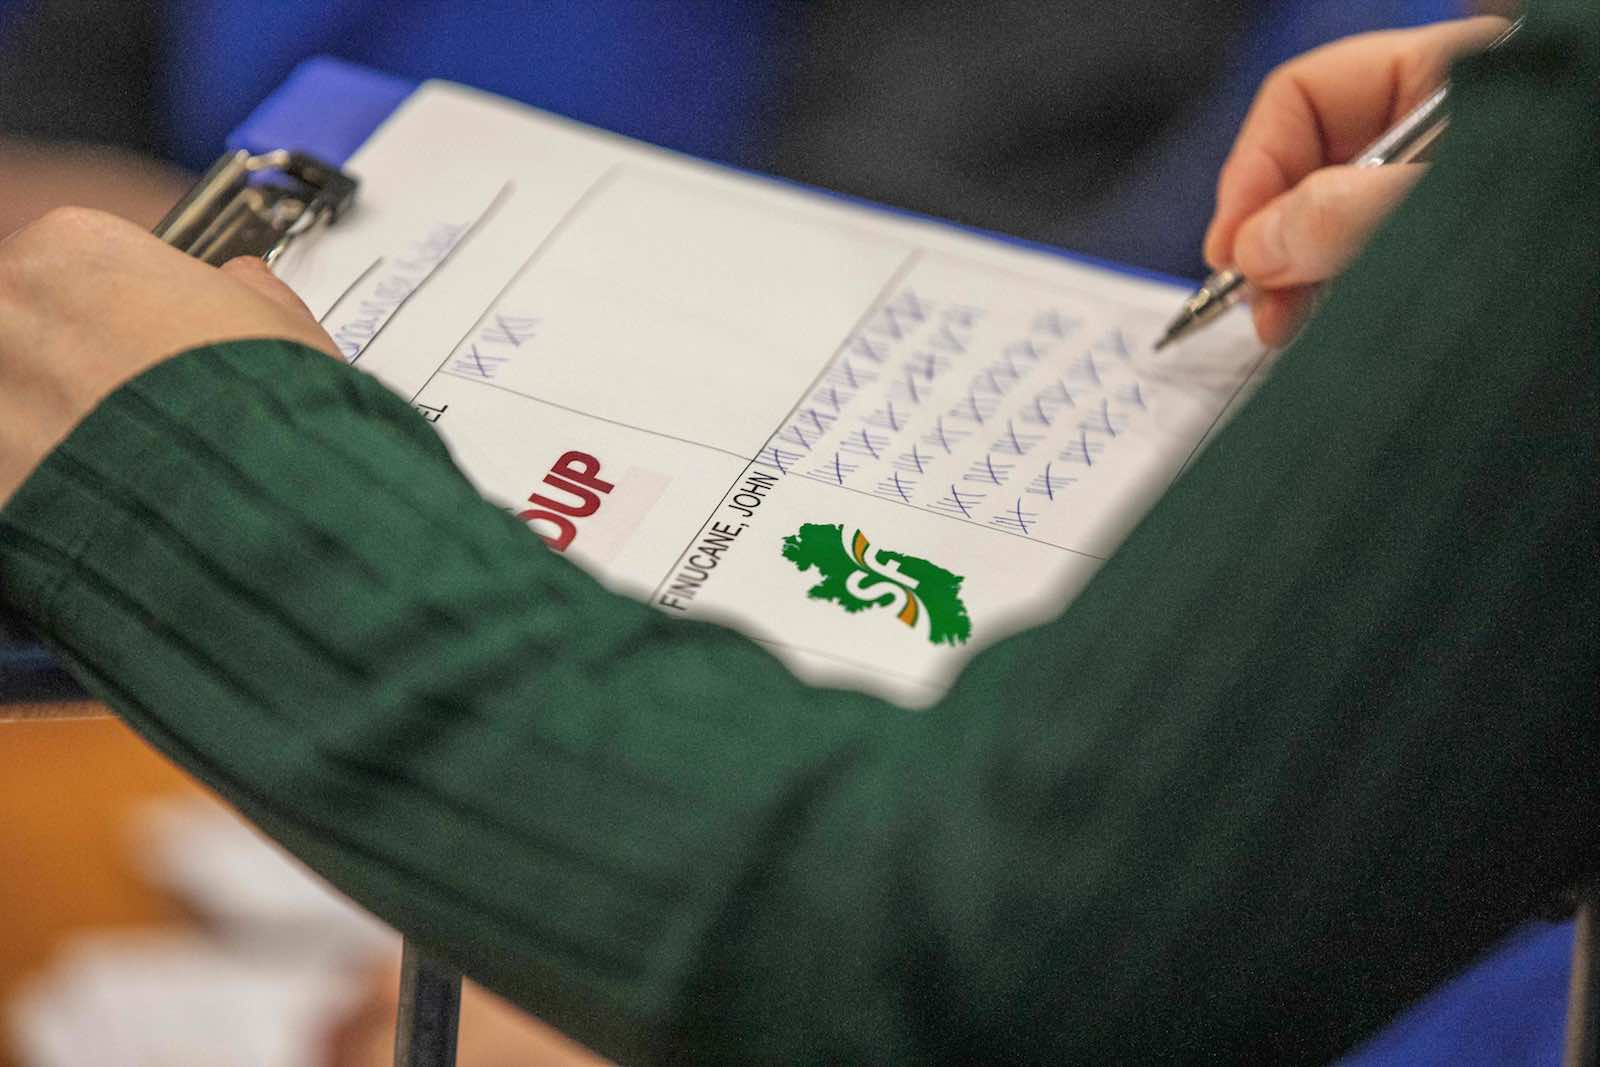 Tallying the votes in the UK election (Photo: Photo by Paul Faith/AFP/Getty Images)